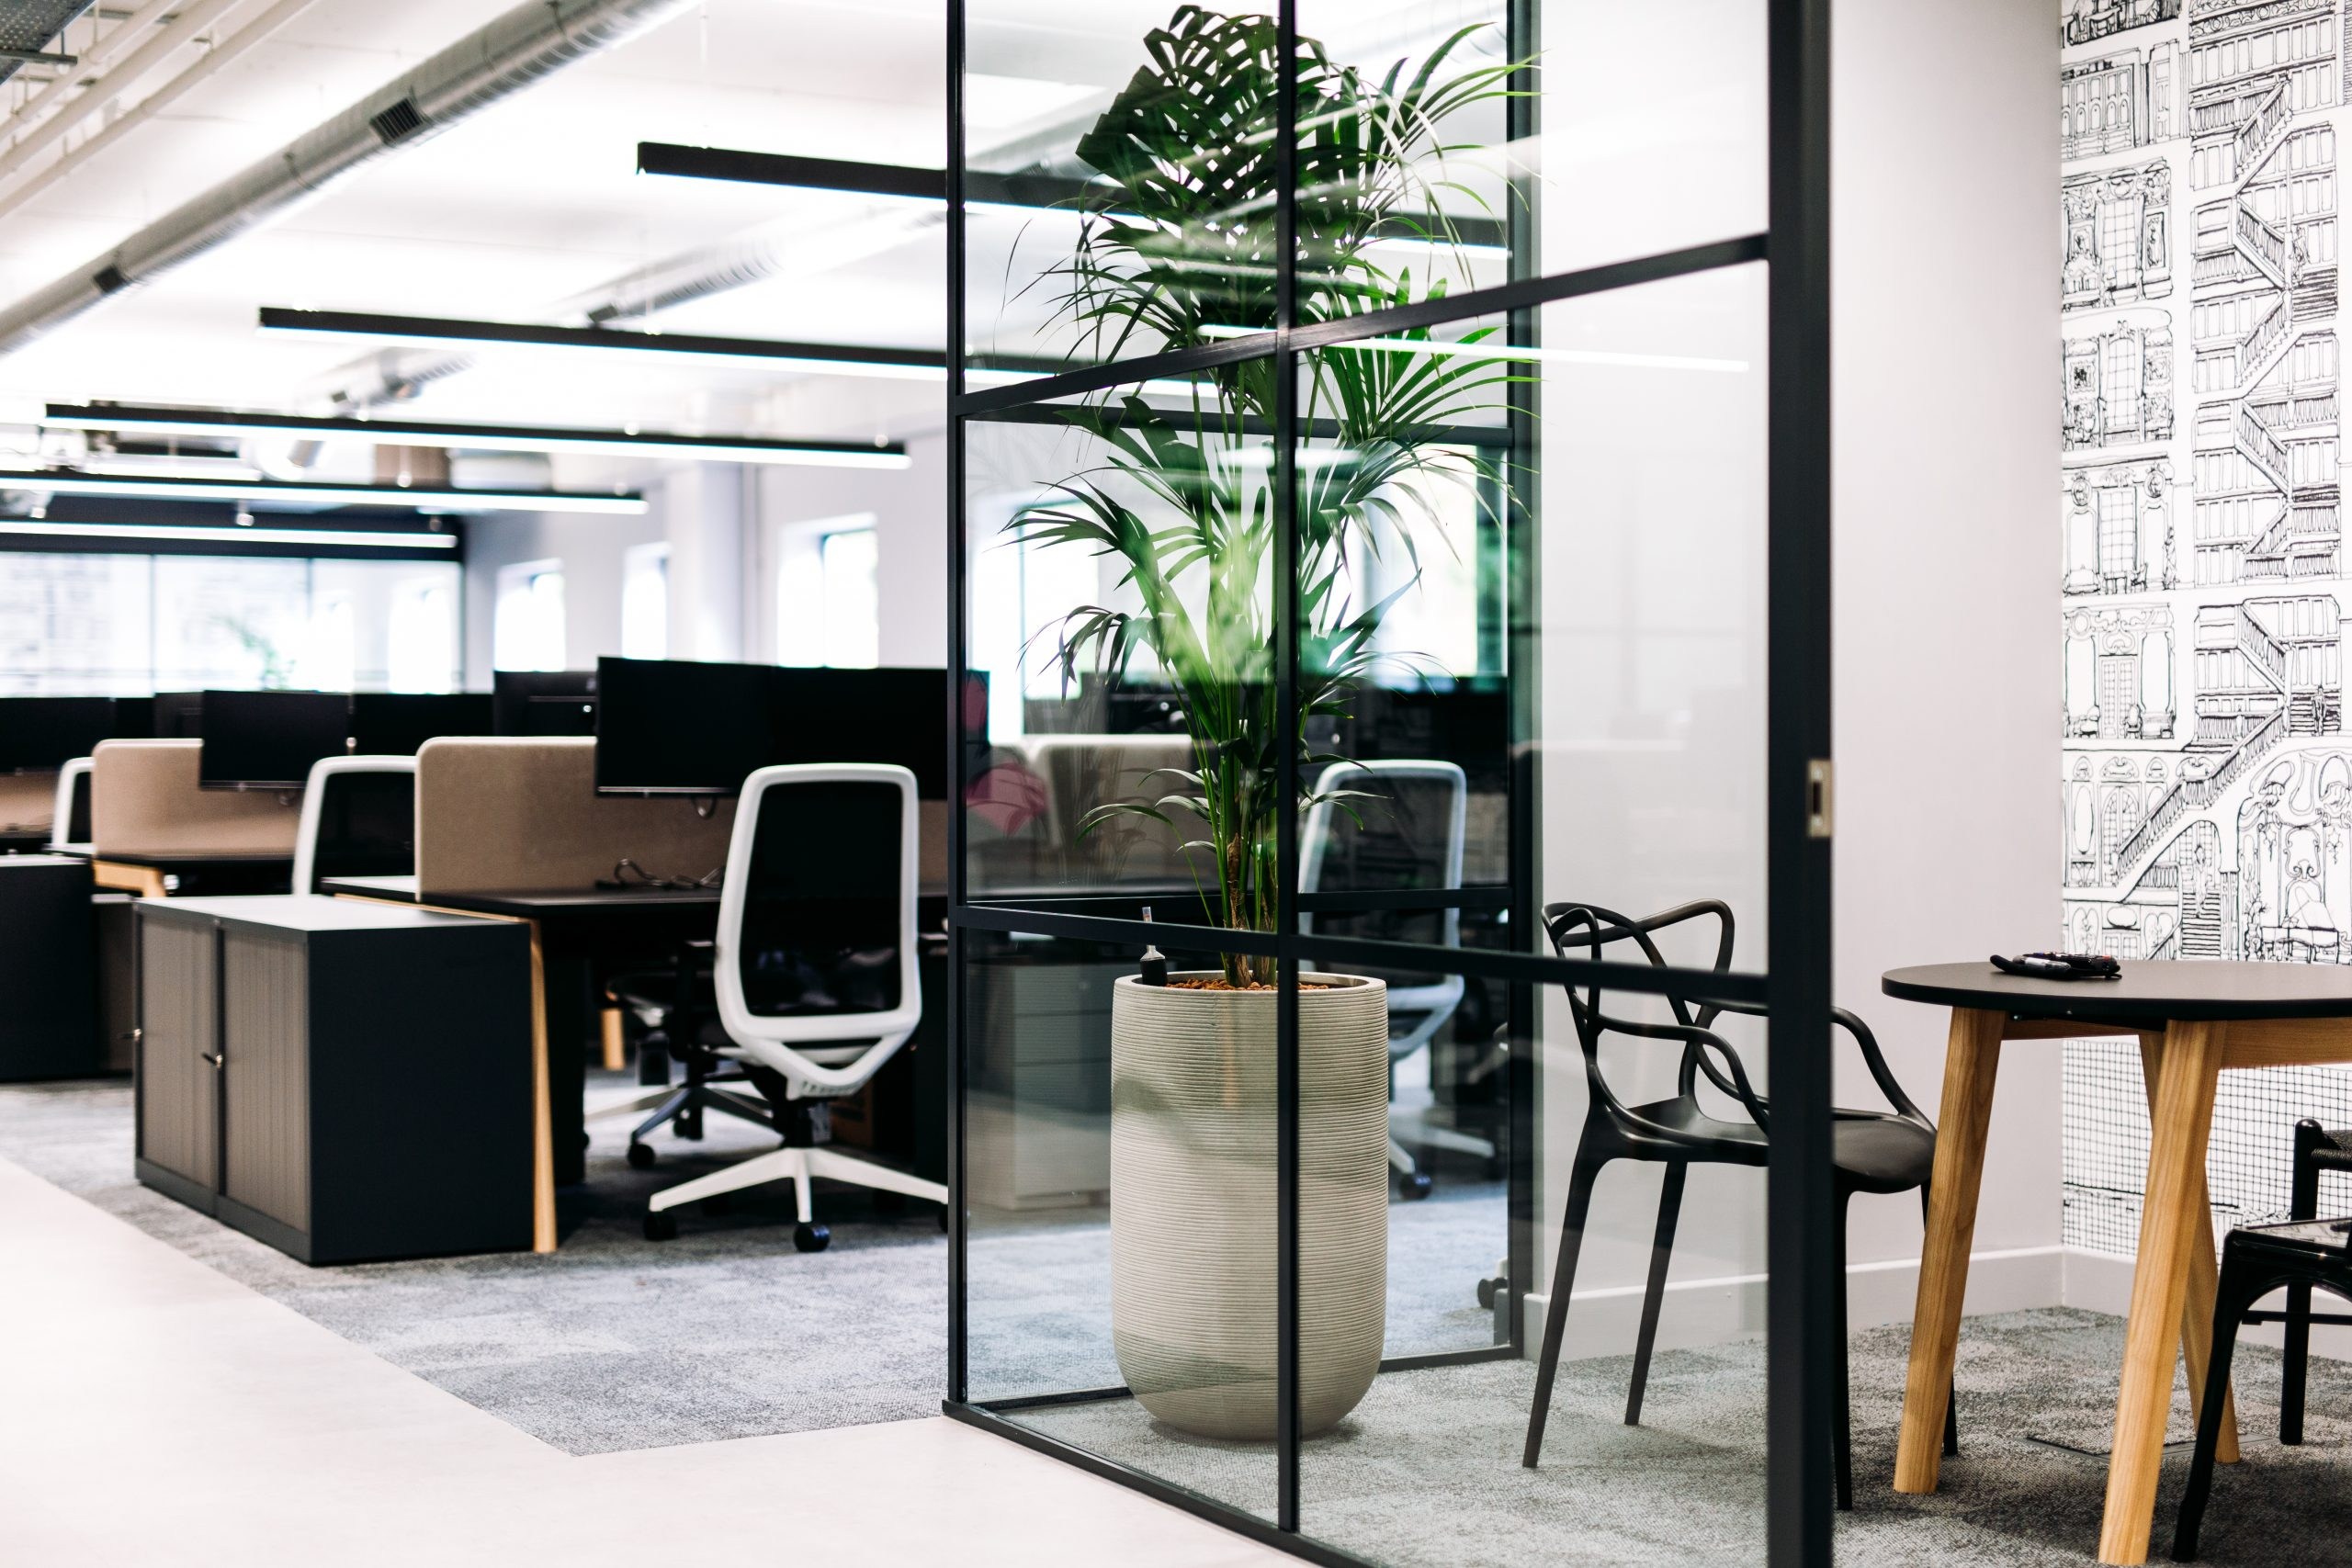 Hybrid Working Office: What does it look like?